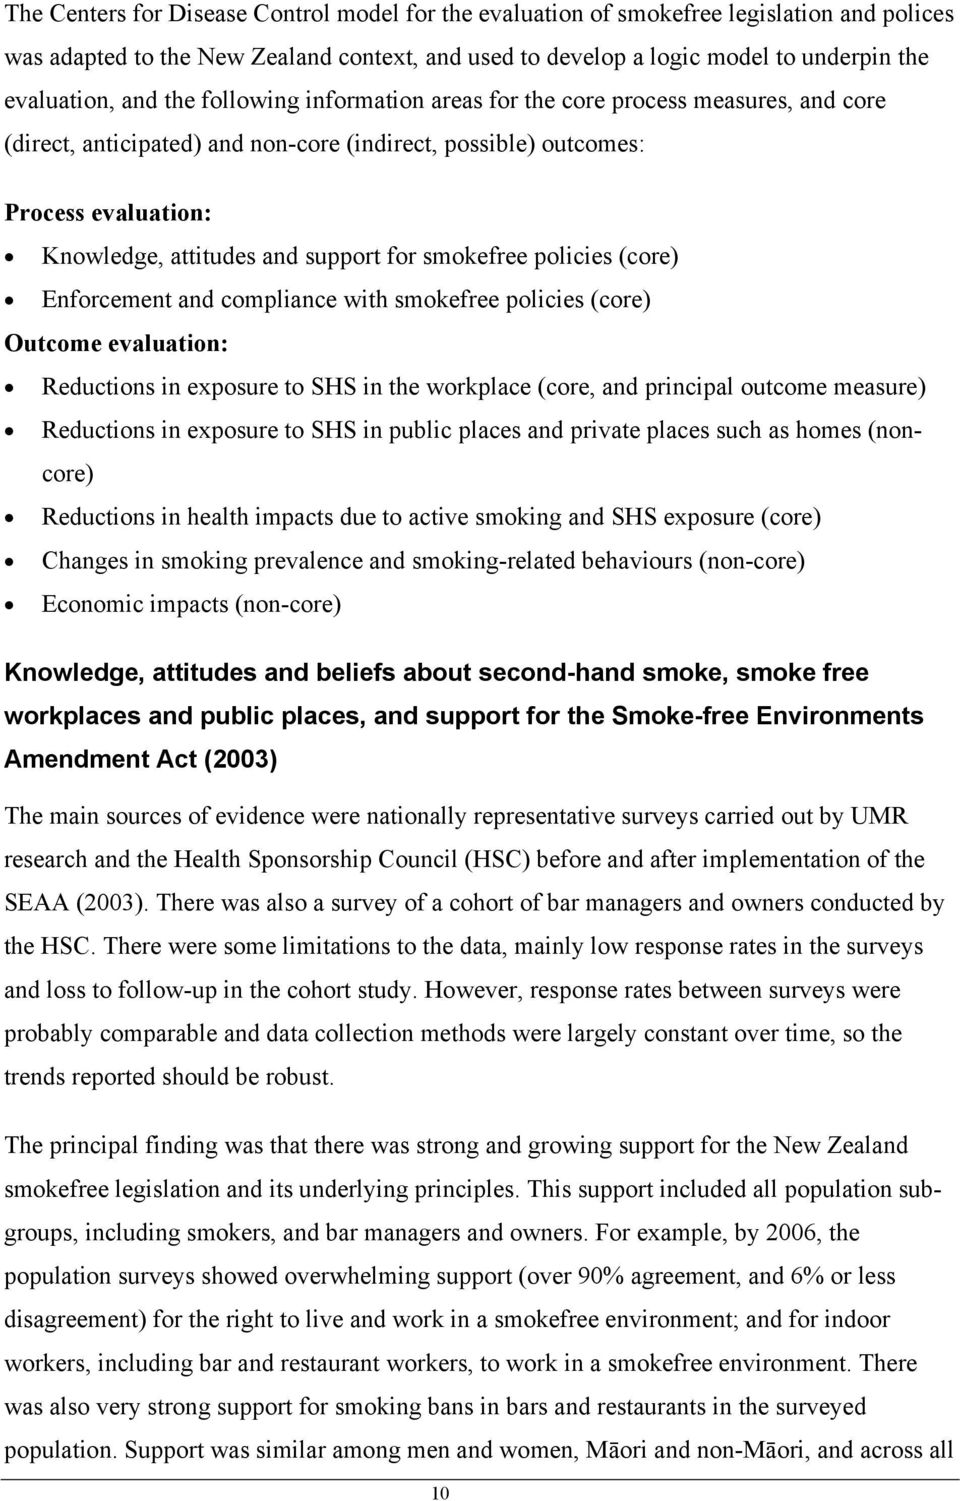 smokefree policies (core) Enforcement and compliance with smokefree policies (core) Outcome evaluation: Reductions in exposure to SHS in the workplace (core, and principal outcome measure) Reductions